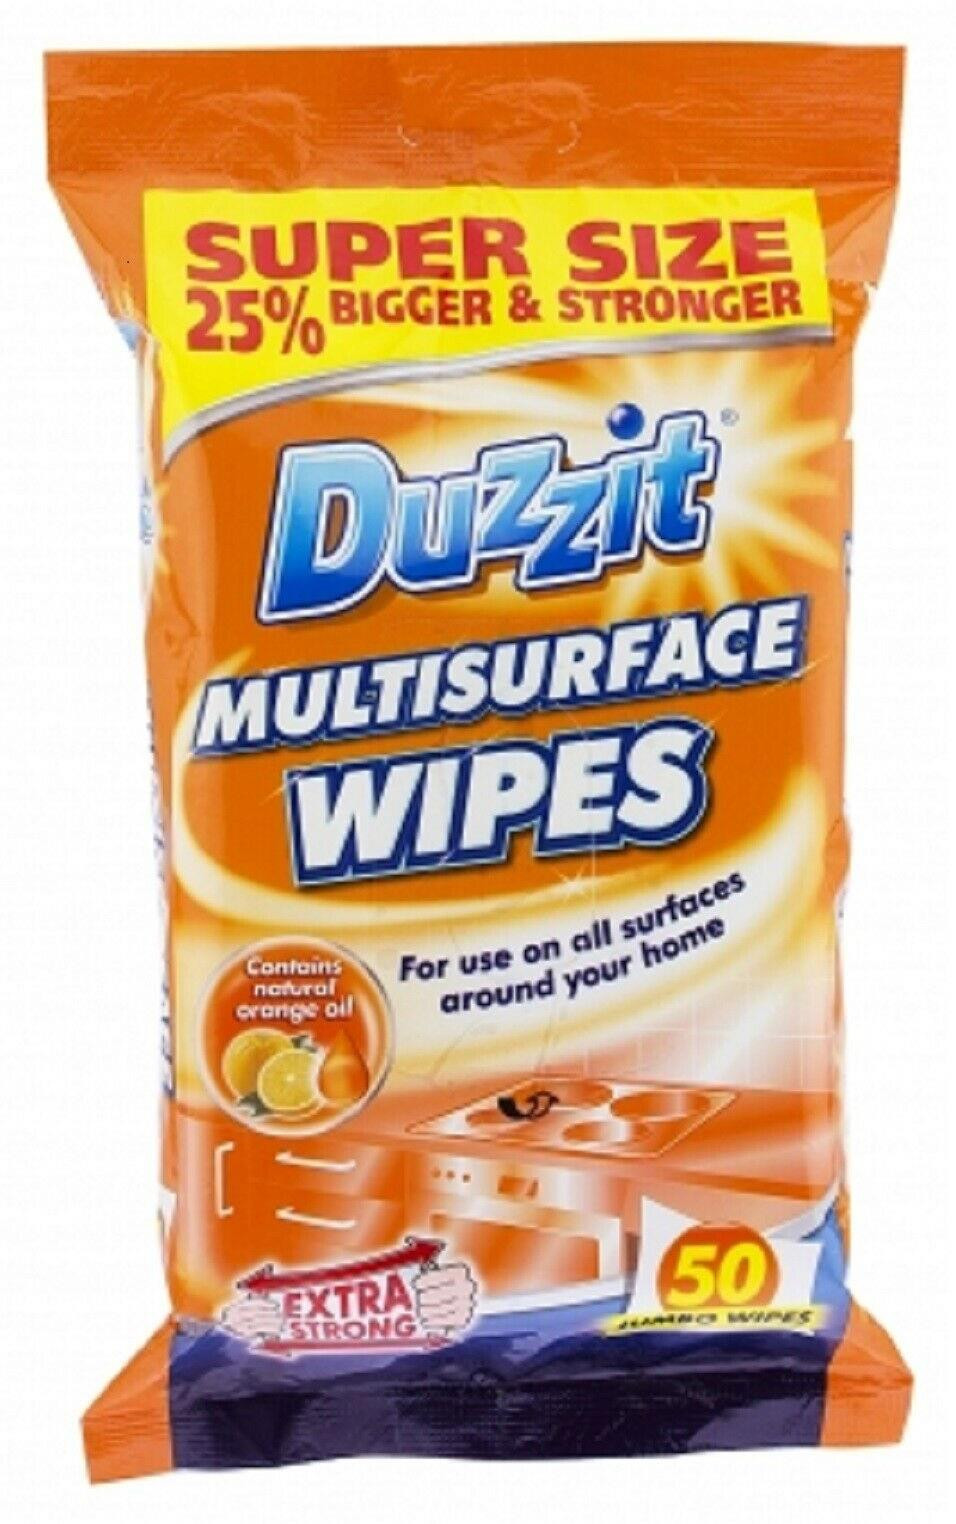 Duzzit Multisurface Wipes 50 Pack